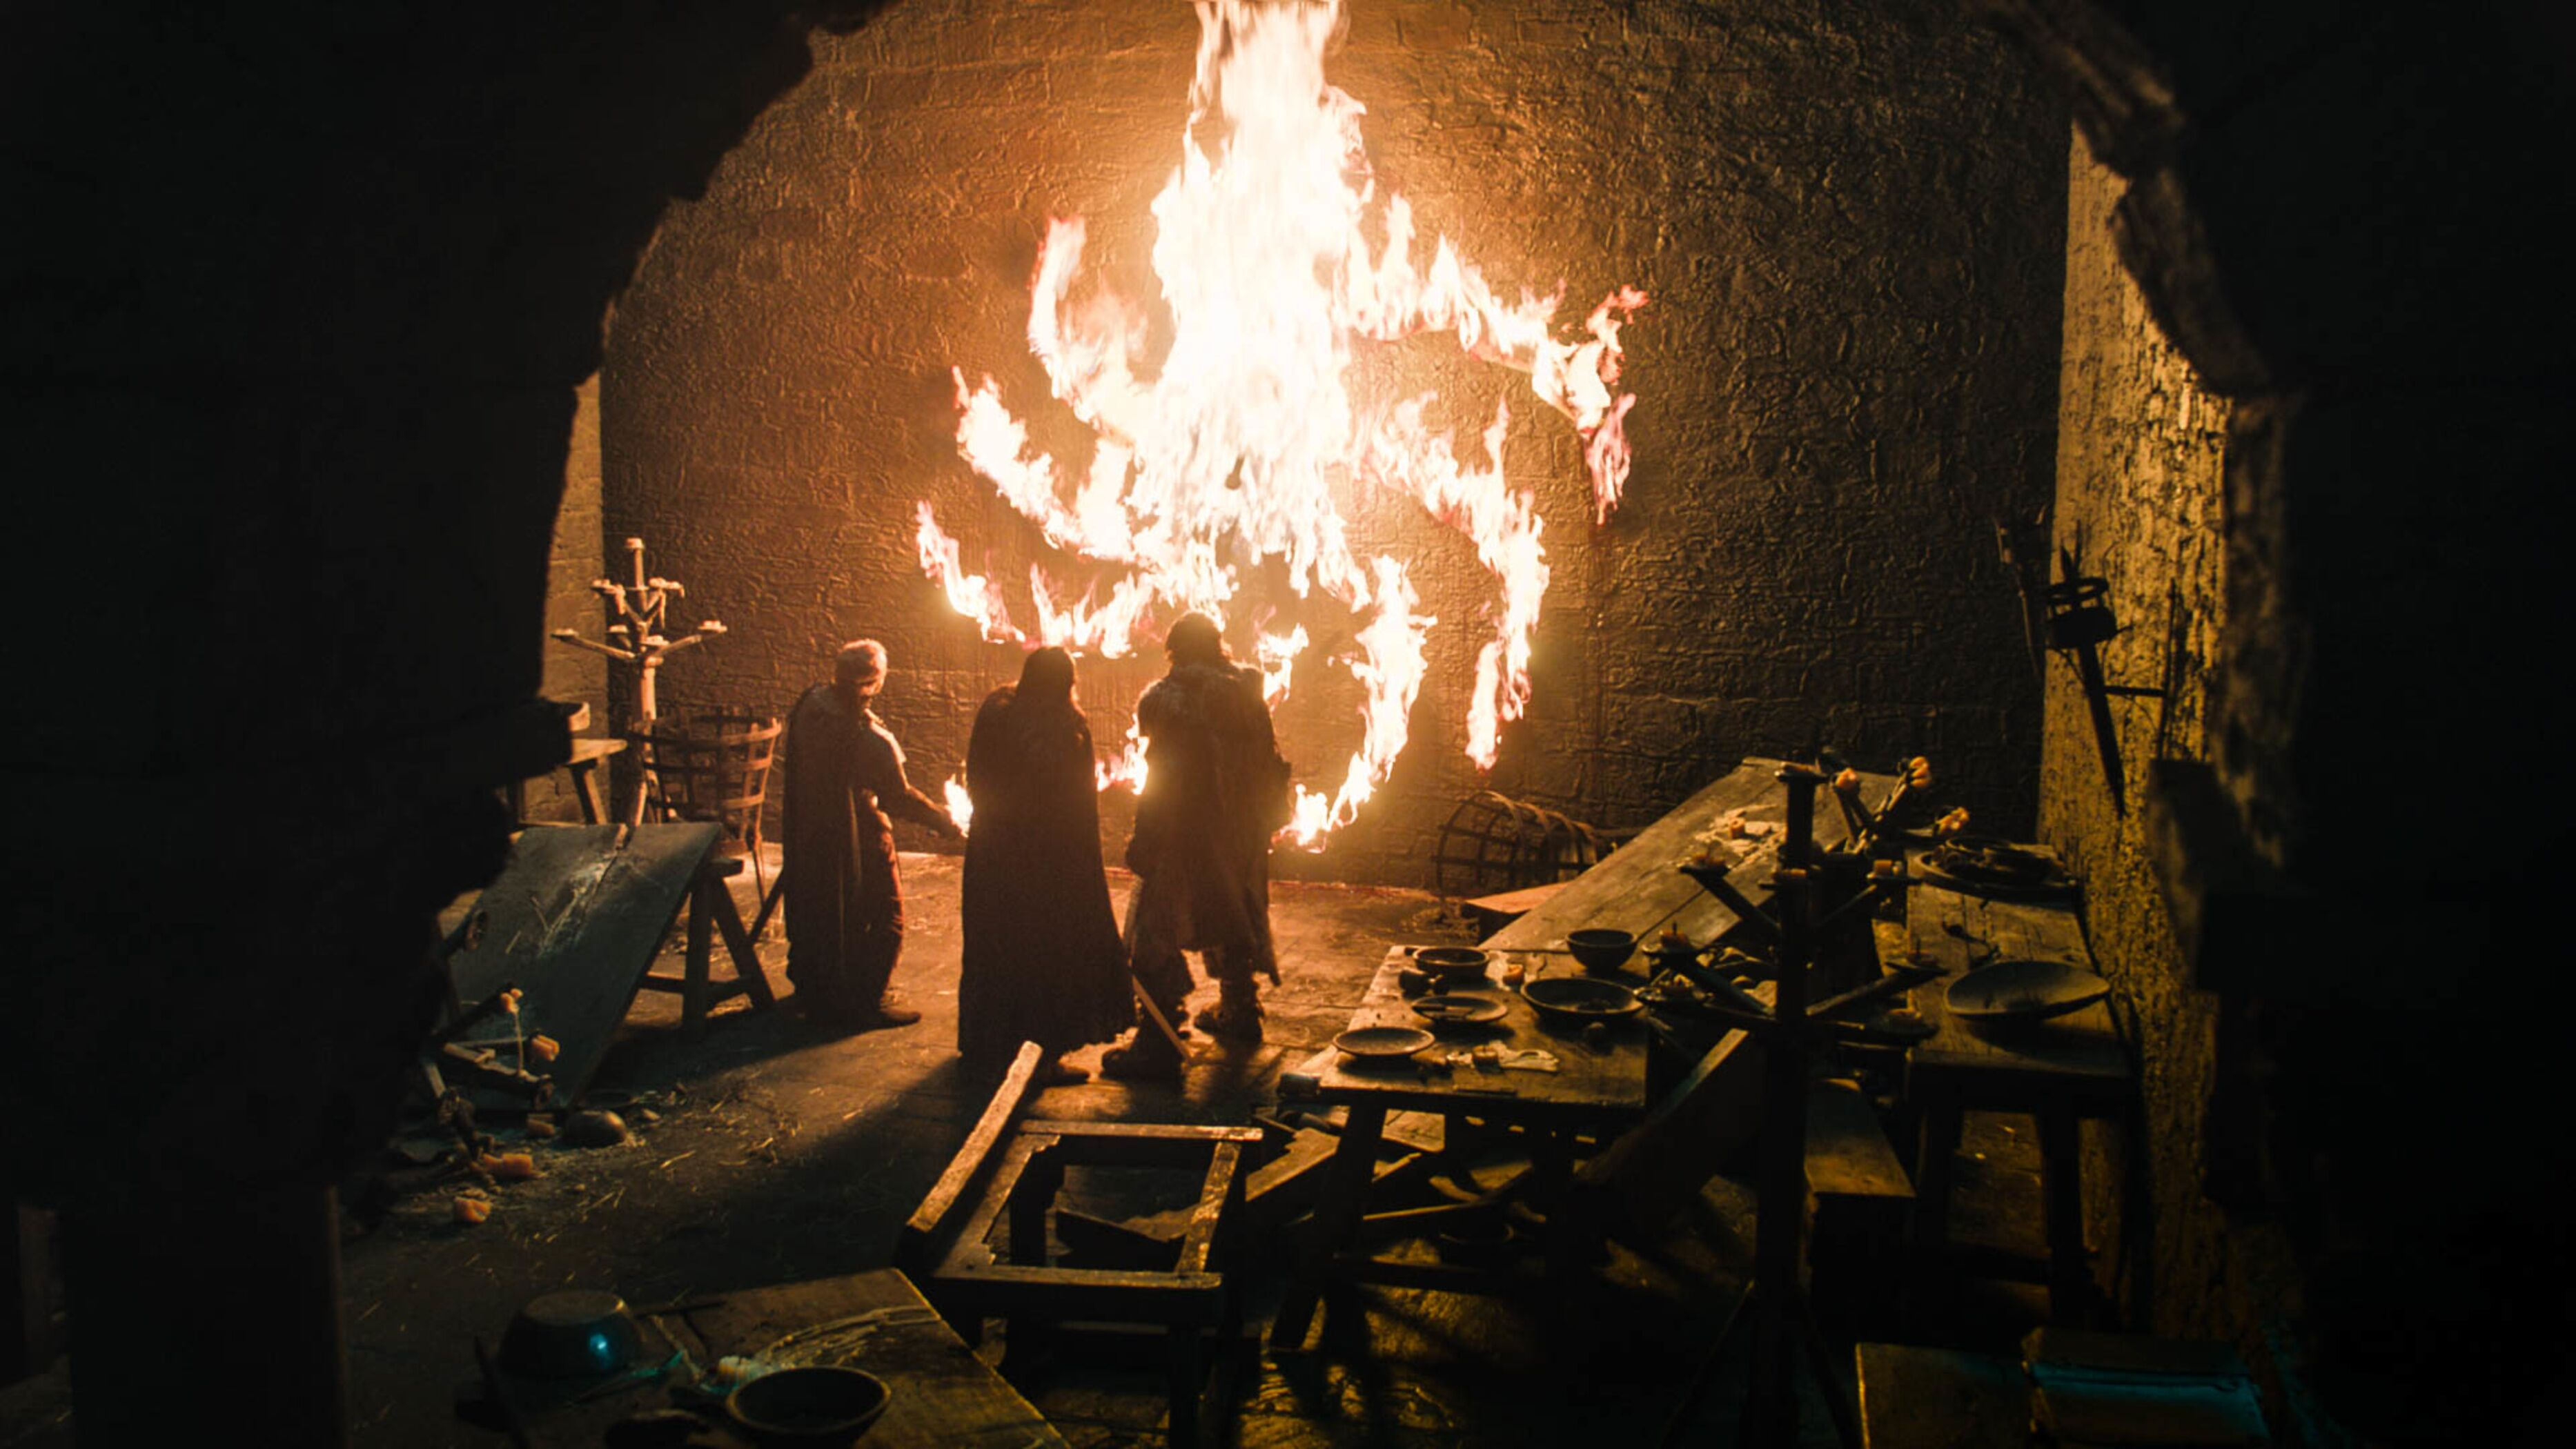 What does the burning spiral mean in Game of Thrones premiere?